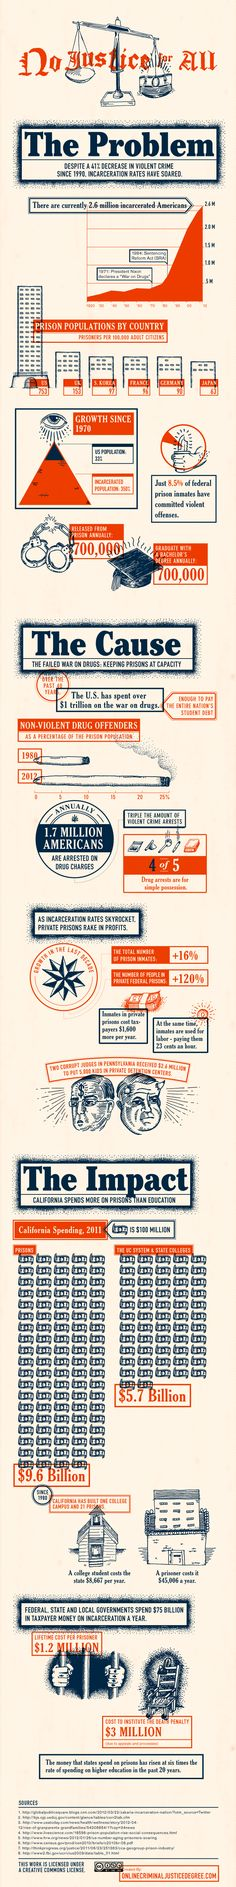 """""""Despite Decreases in Violent Crime, Incarceration Rates Have Soared"""" -- an infographic about the numbers behind funding jails."""